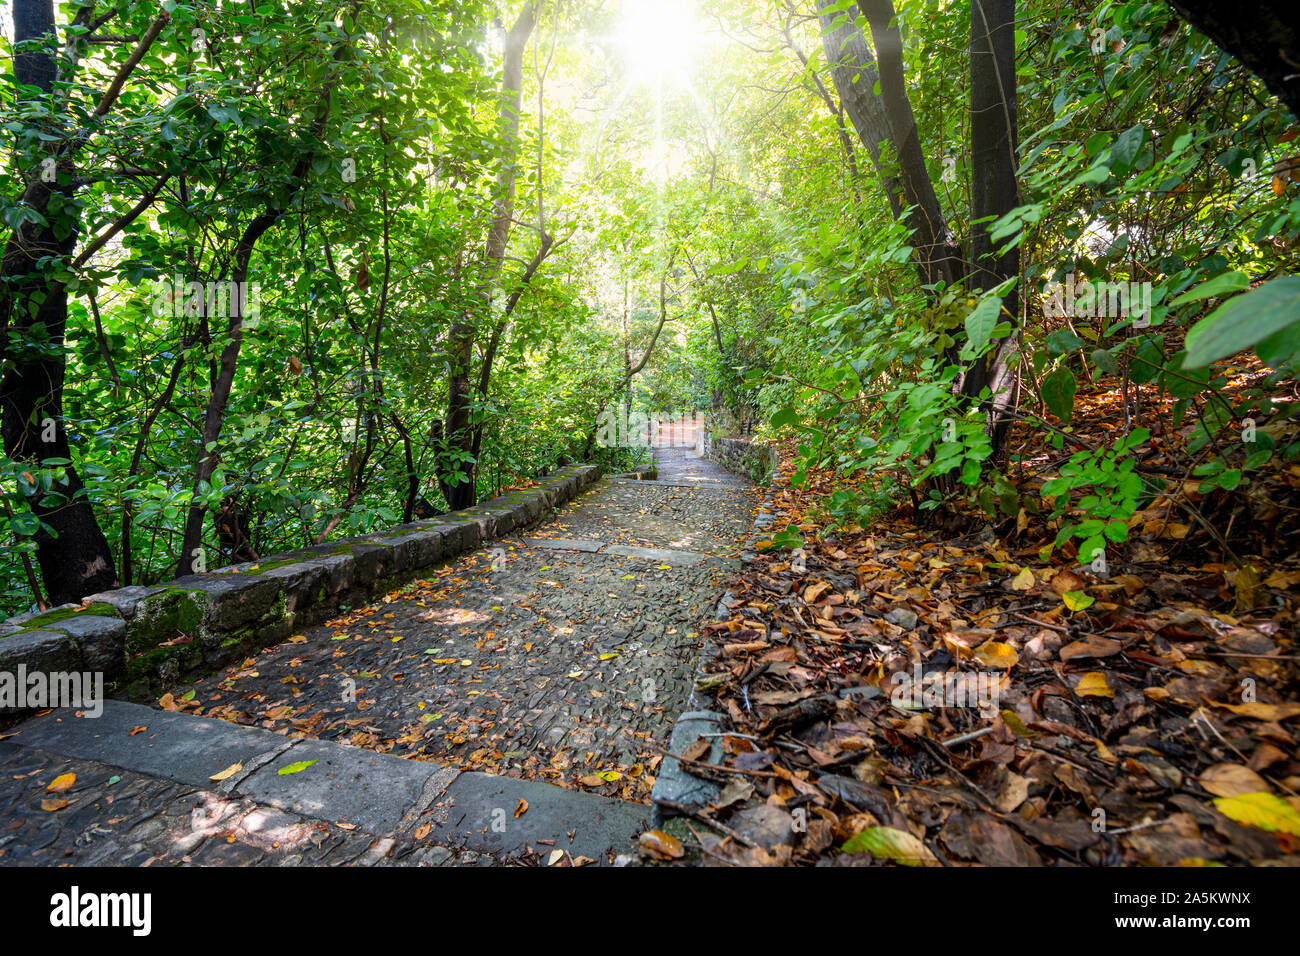 Sunlight flares through the dense trees after a light rain on a stone pathway leading down from the cemetery and park on Castle Hill in Nice, France. Stock Photo